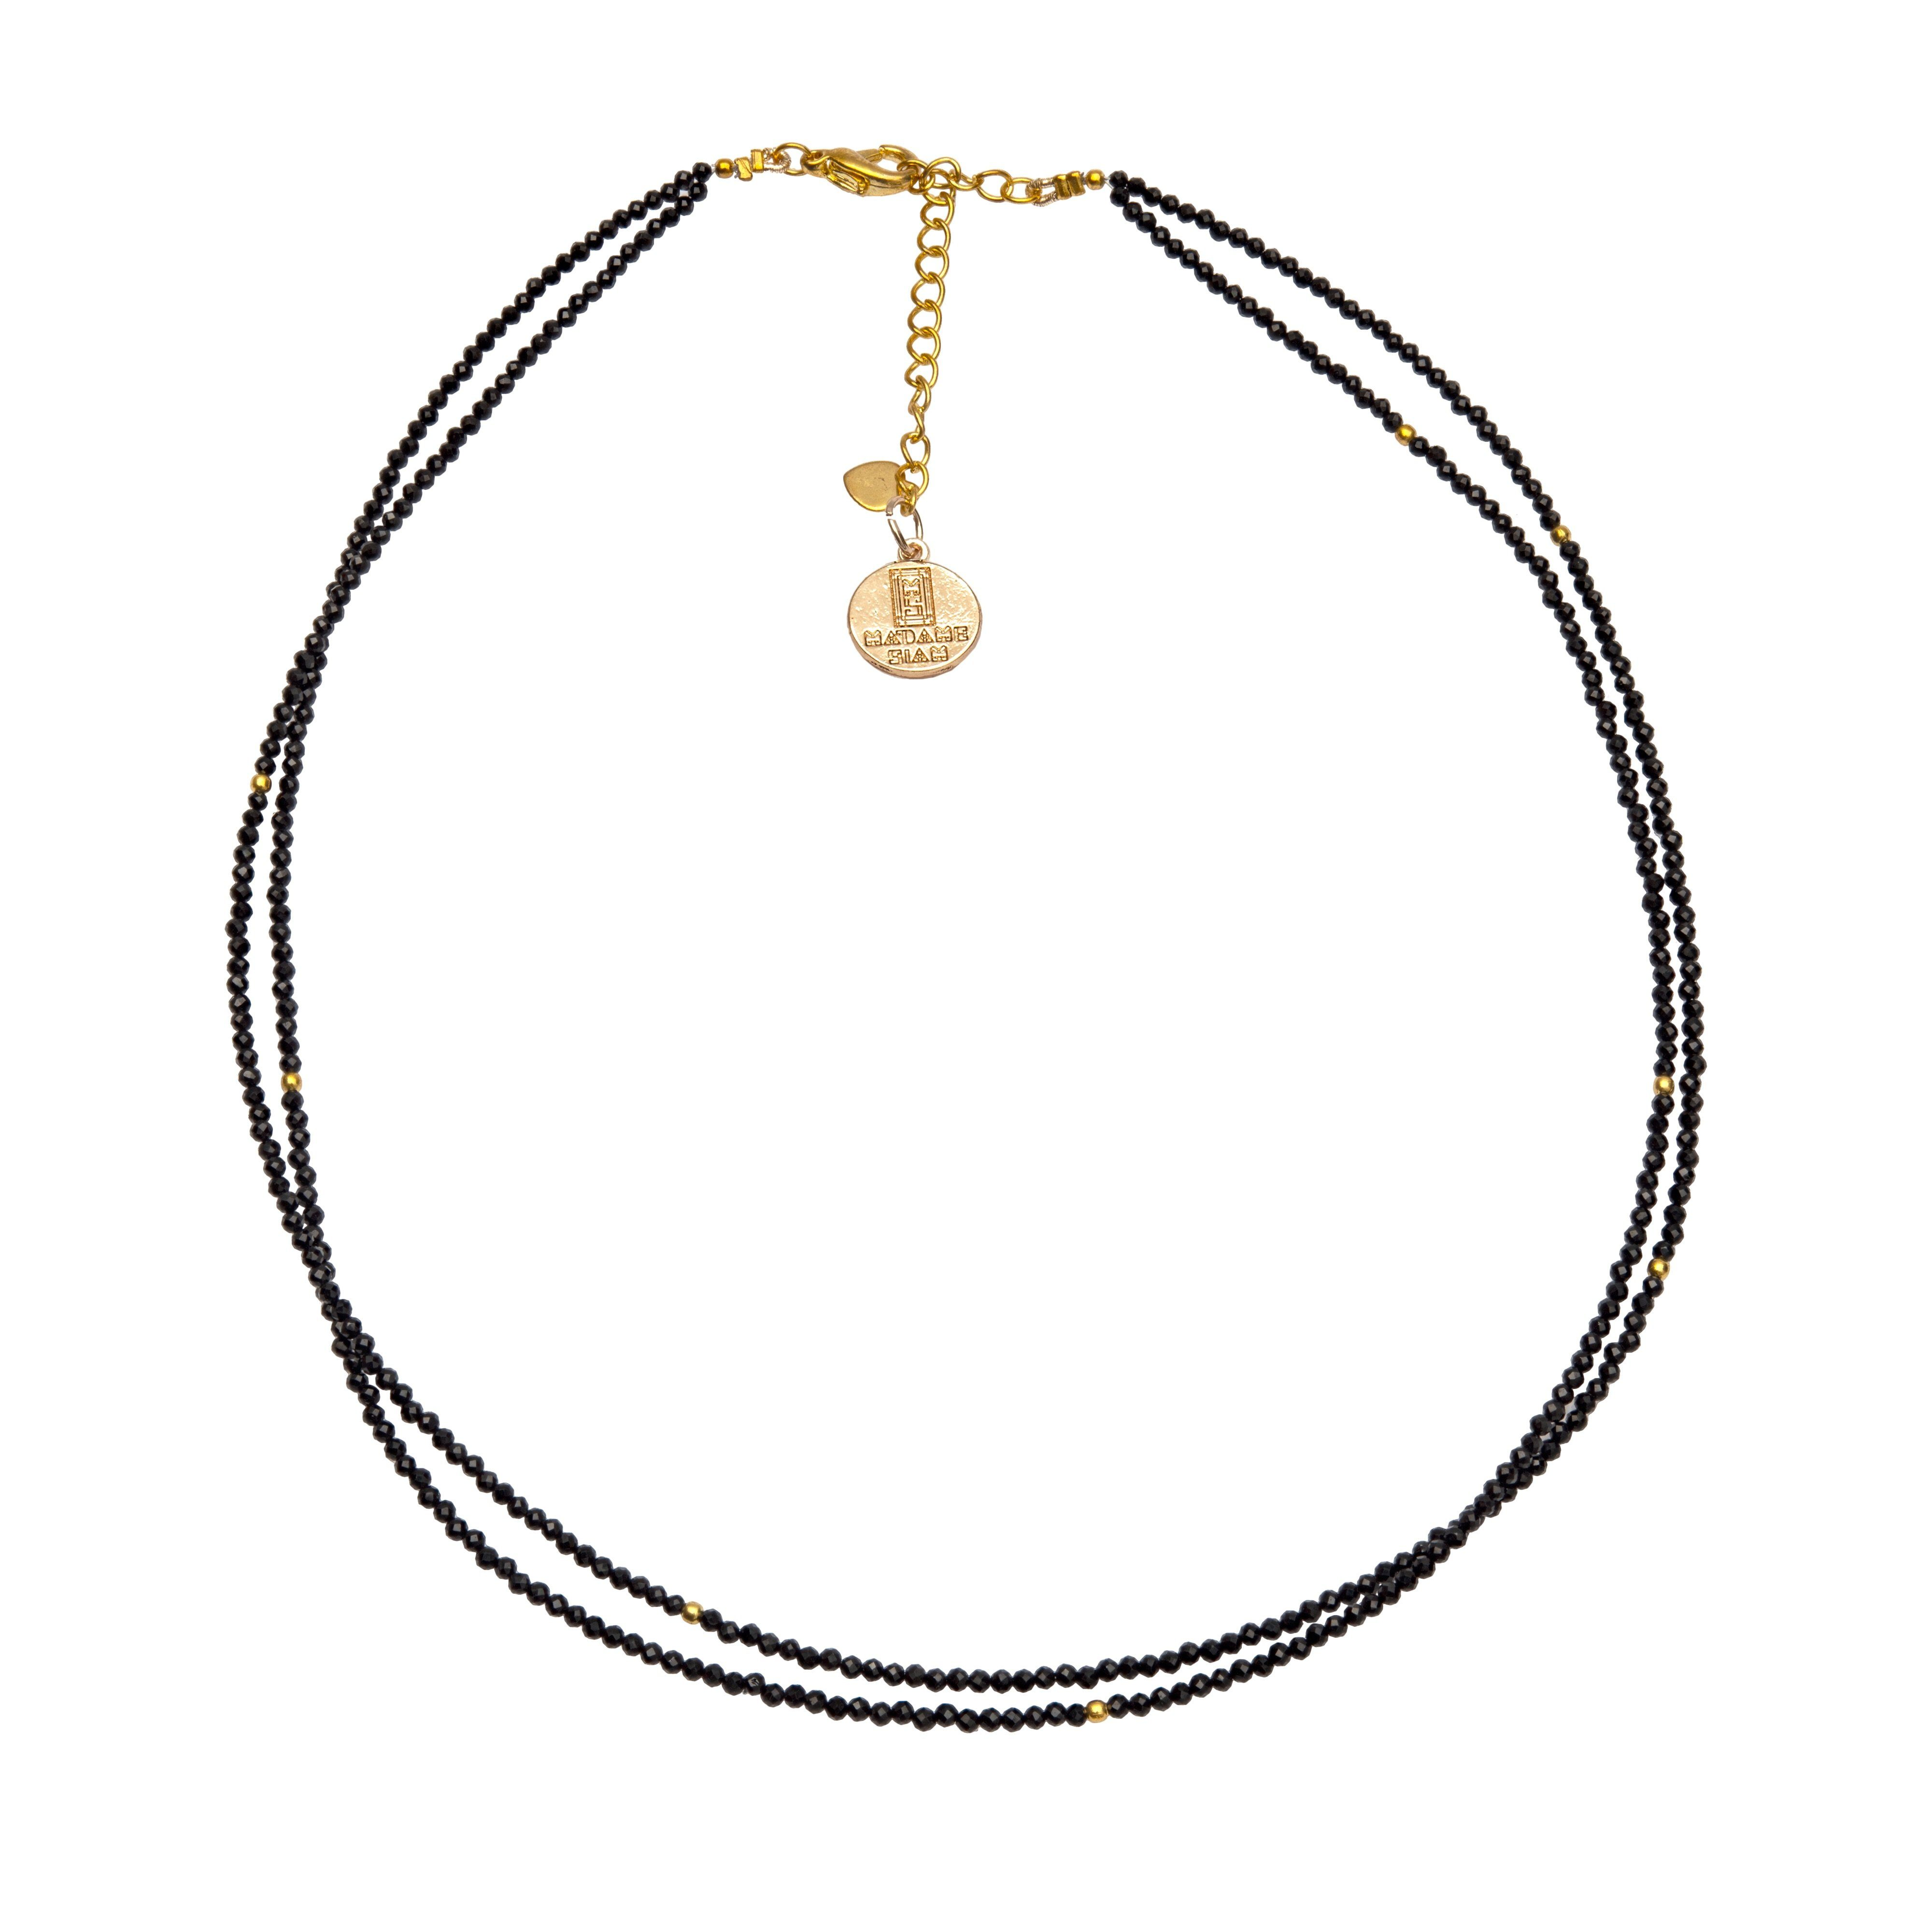 KA black onyx double chocker - MadamSiam